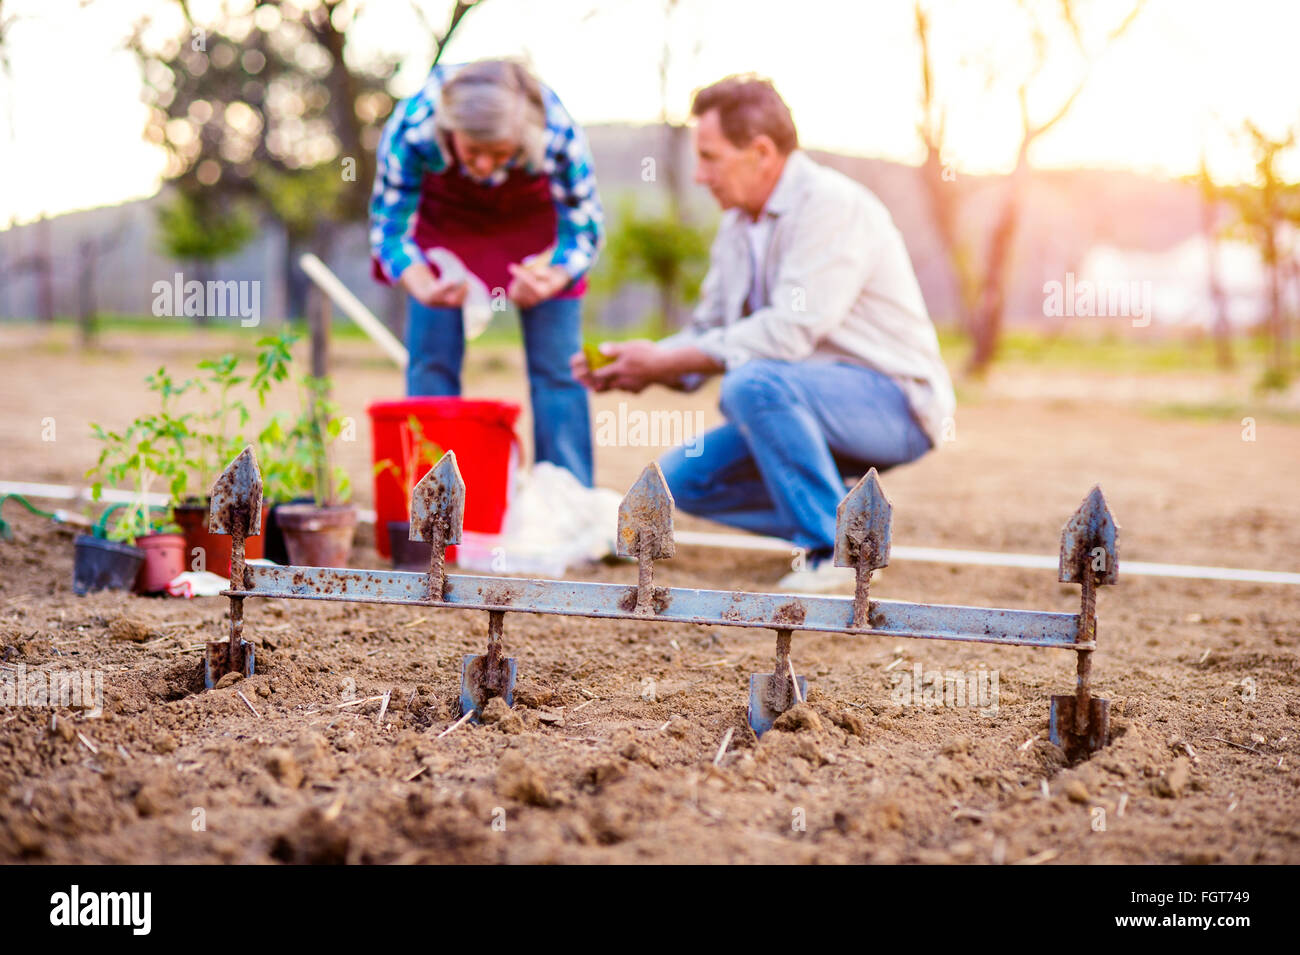 course, Craig Parker Dating interests include, traveling